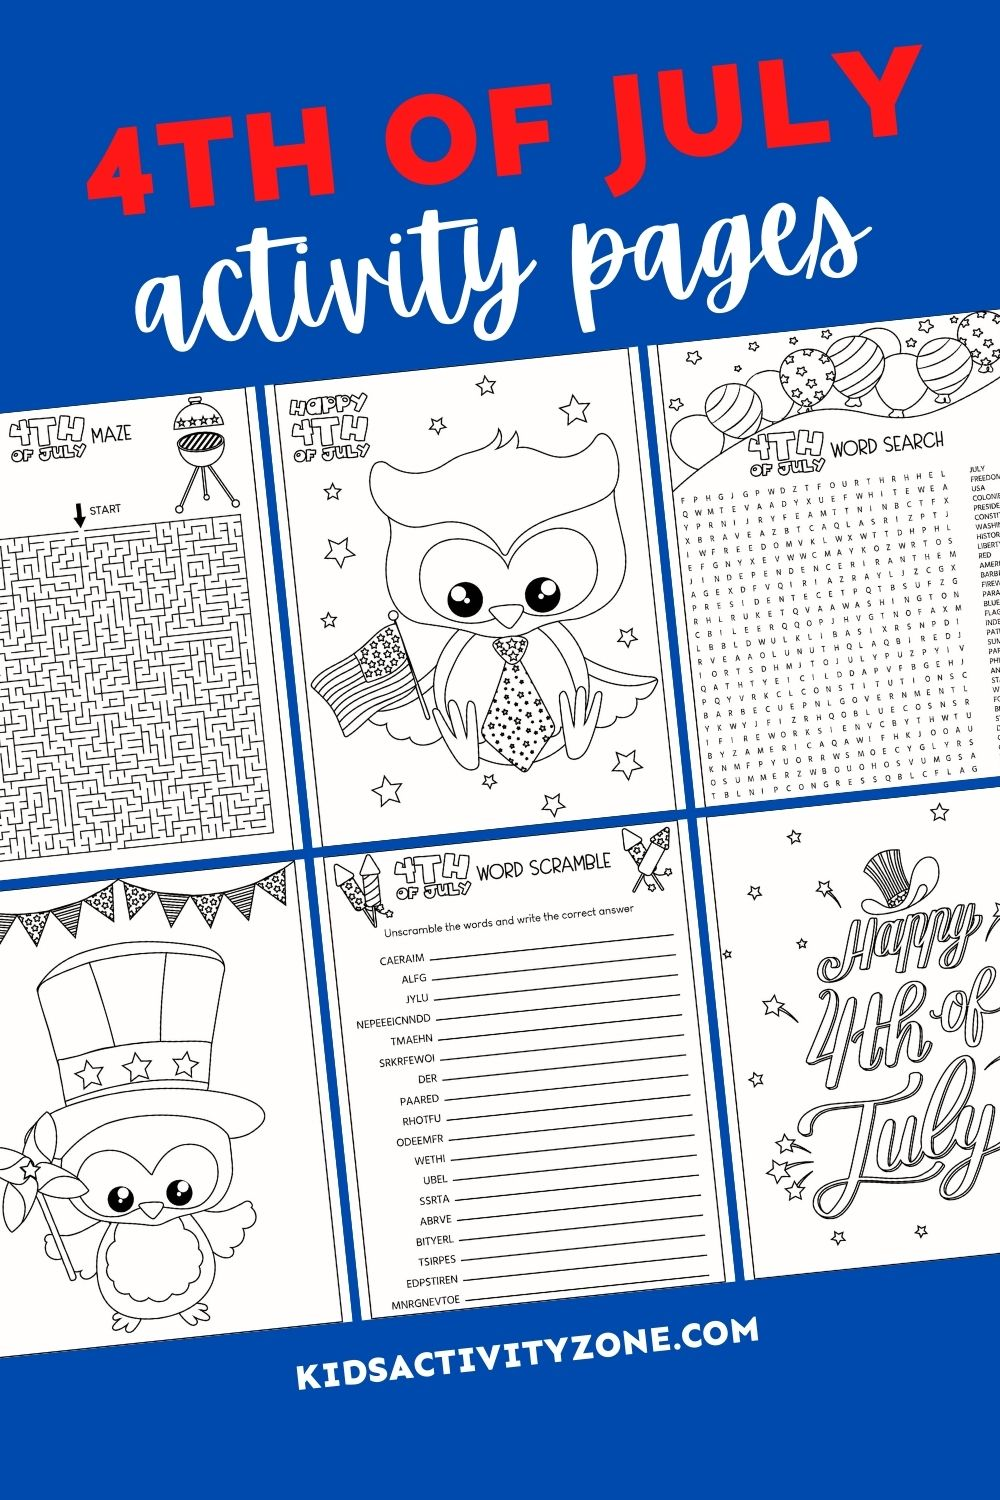 Grab these fun, themed 4th of July Activities. These free printables includes coloring pages, word scramble, word search and word challenge. The perfect addition to parties, fun work for kids during the summer and more!